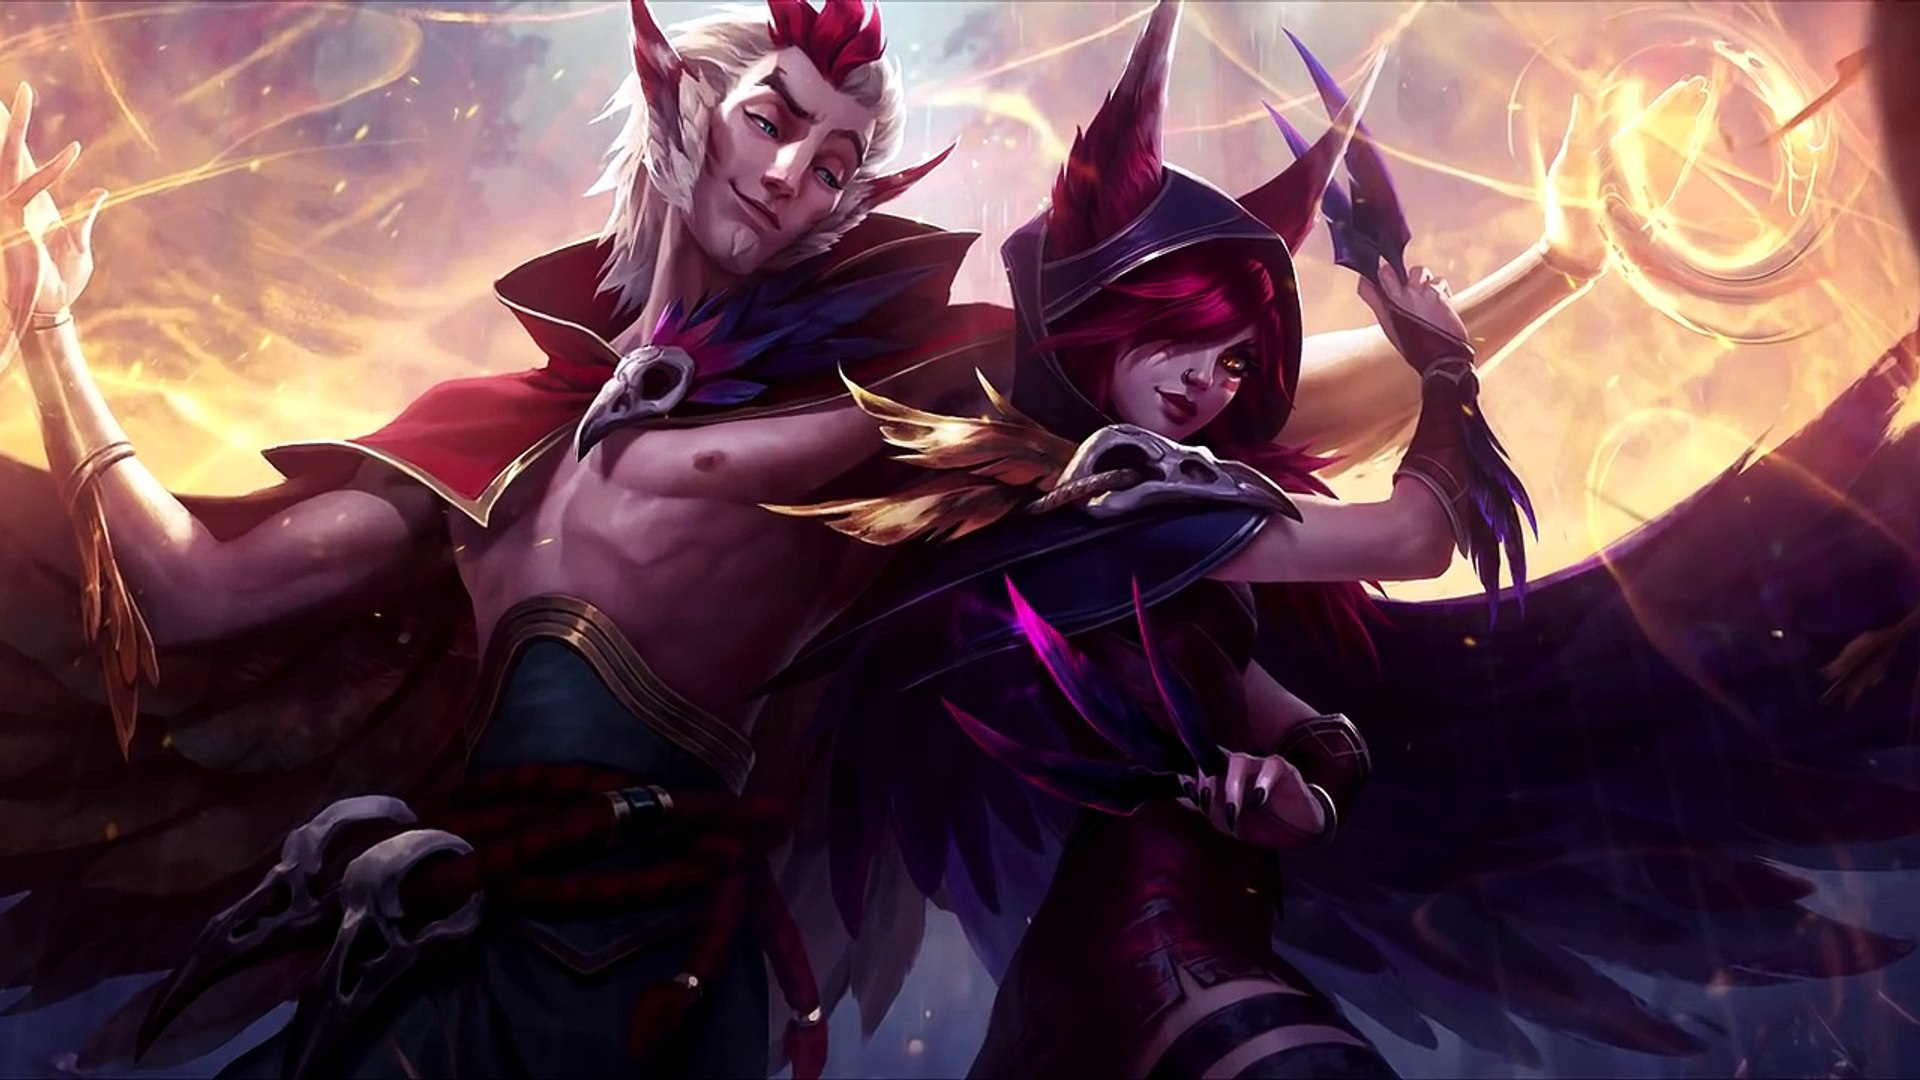 Xayah Reveal - The Rebel - New Champion - YouTube